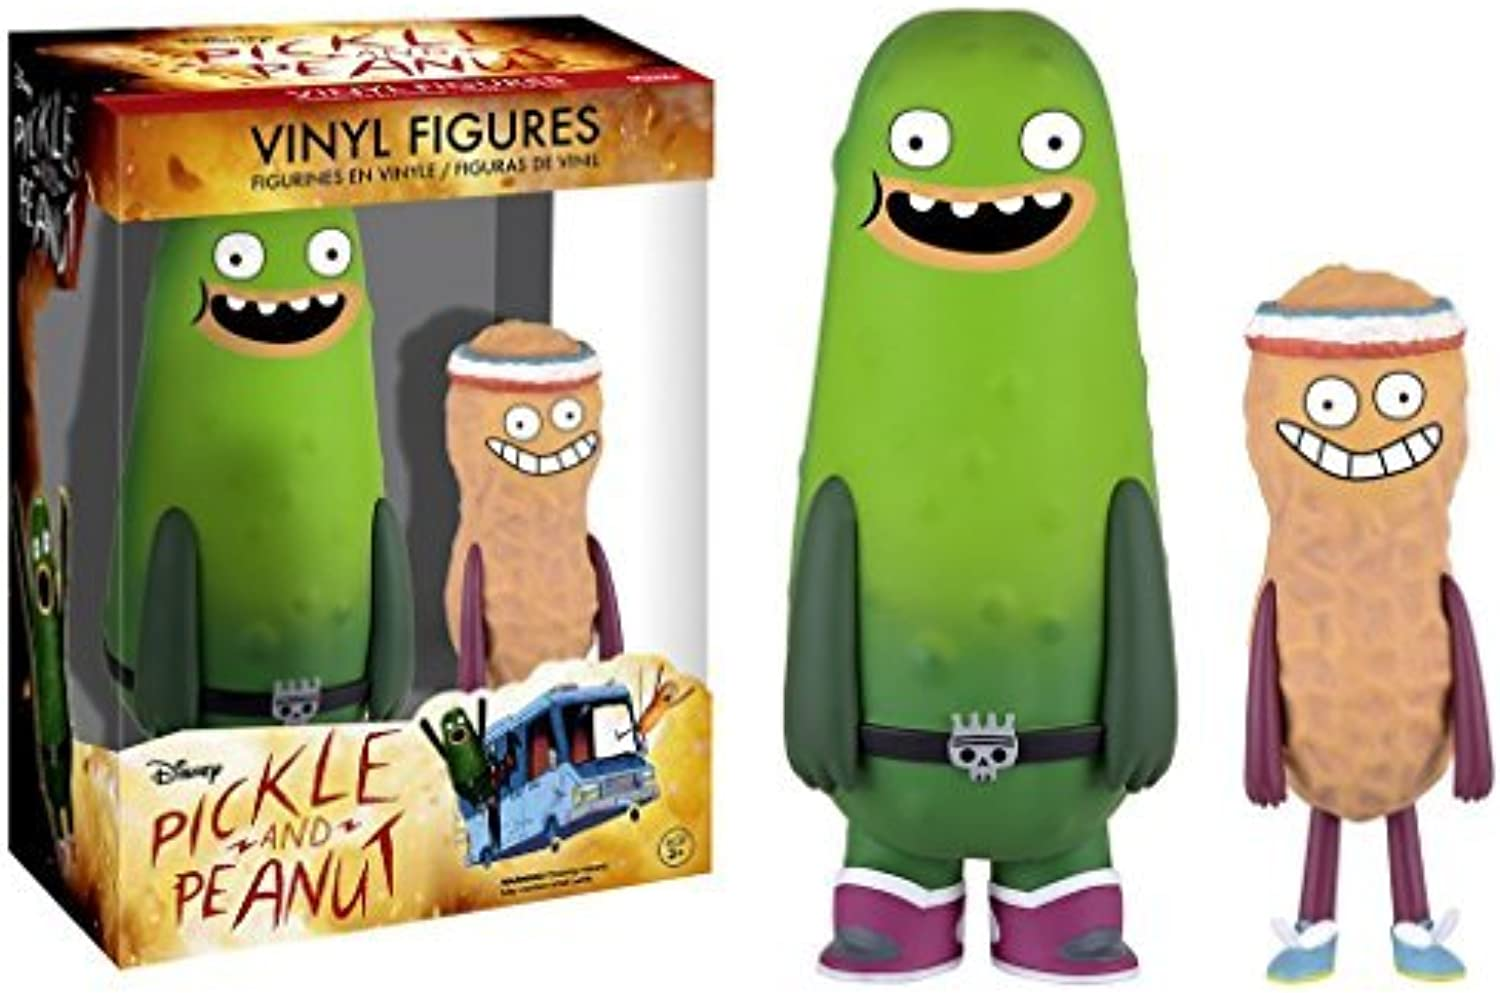 Funko Disney Pickle And Peanut Vinyl Figures by Pickle And Peanut